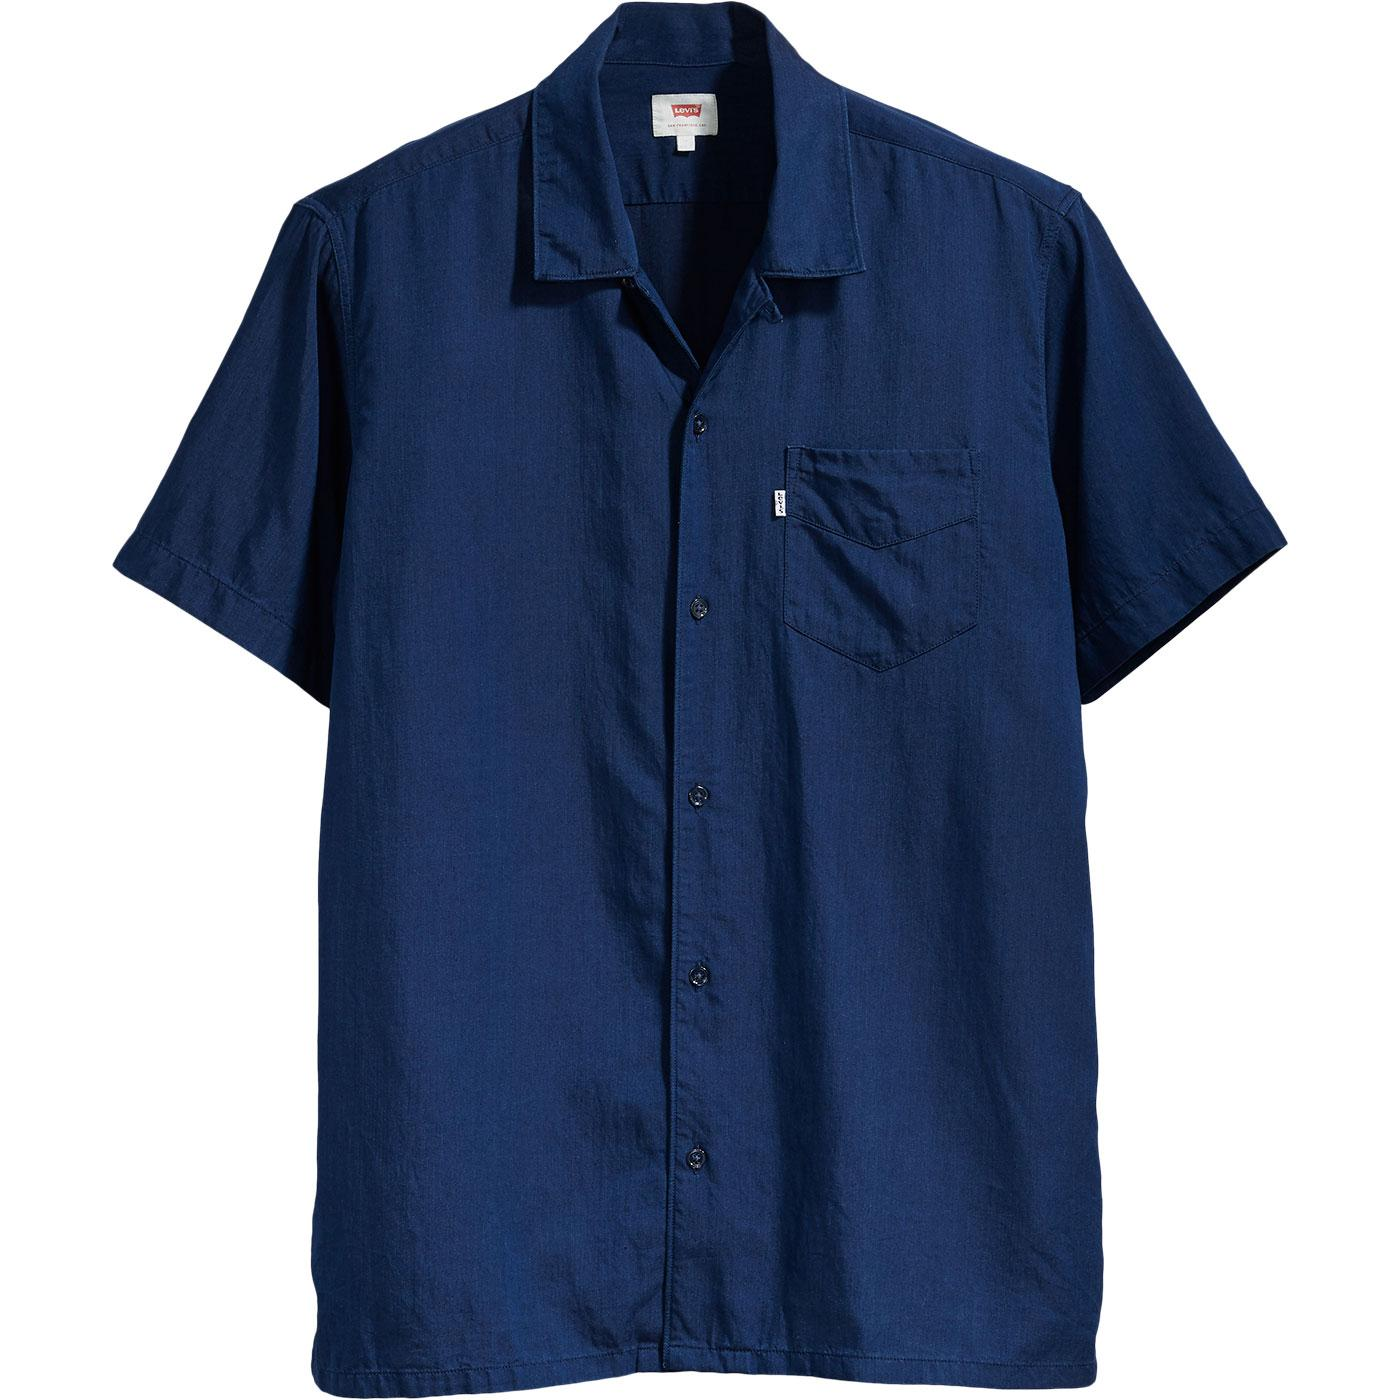 LEVI'S Cubano Retro 70s Tencel Resort Shirt (Navy)